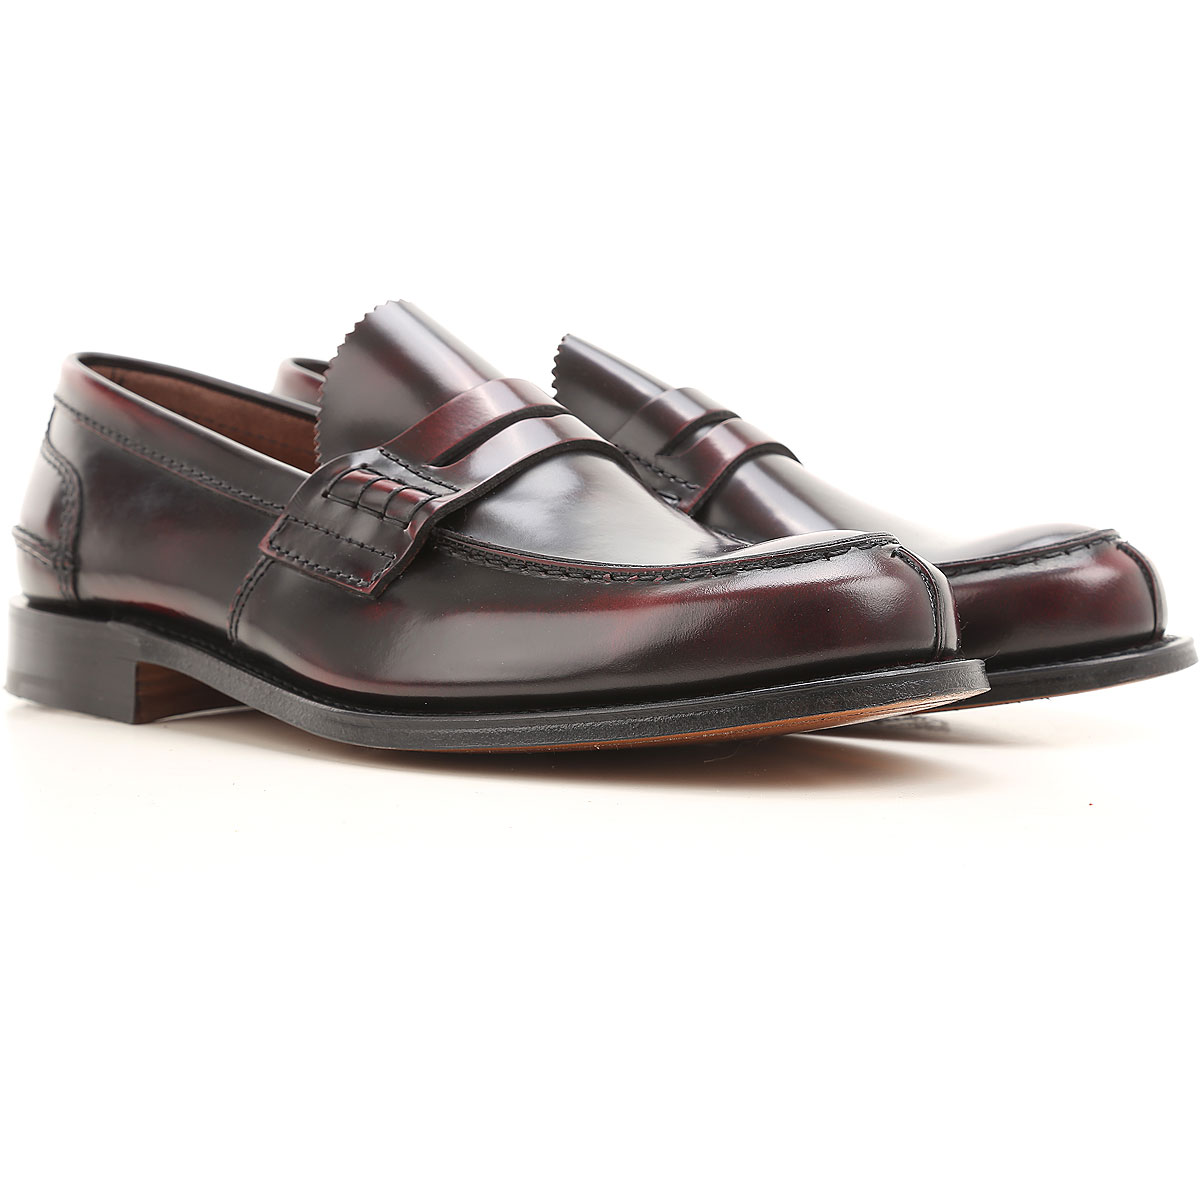 Image of Church's Loafers for Men, Burgundy, Leather, 2017, 10.5 11 8.5 9